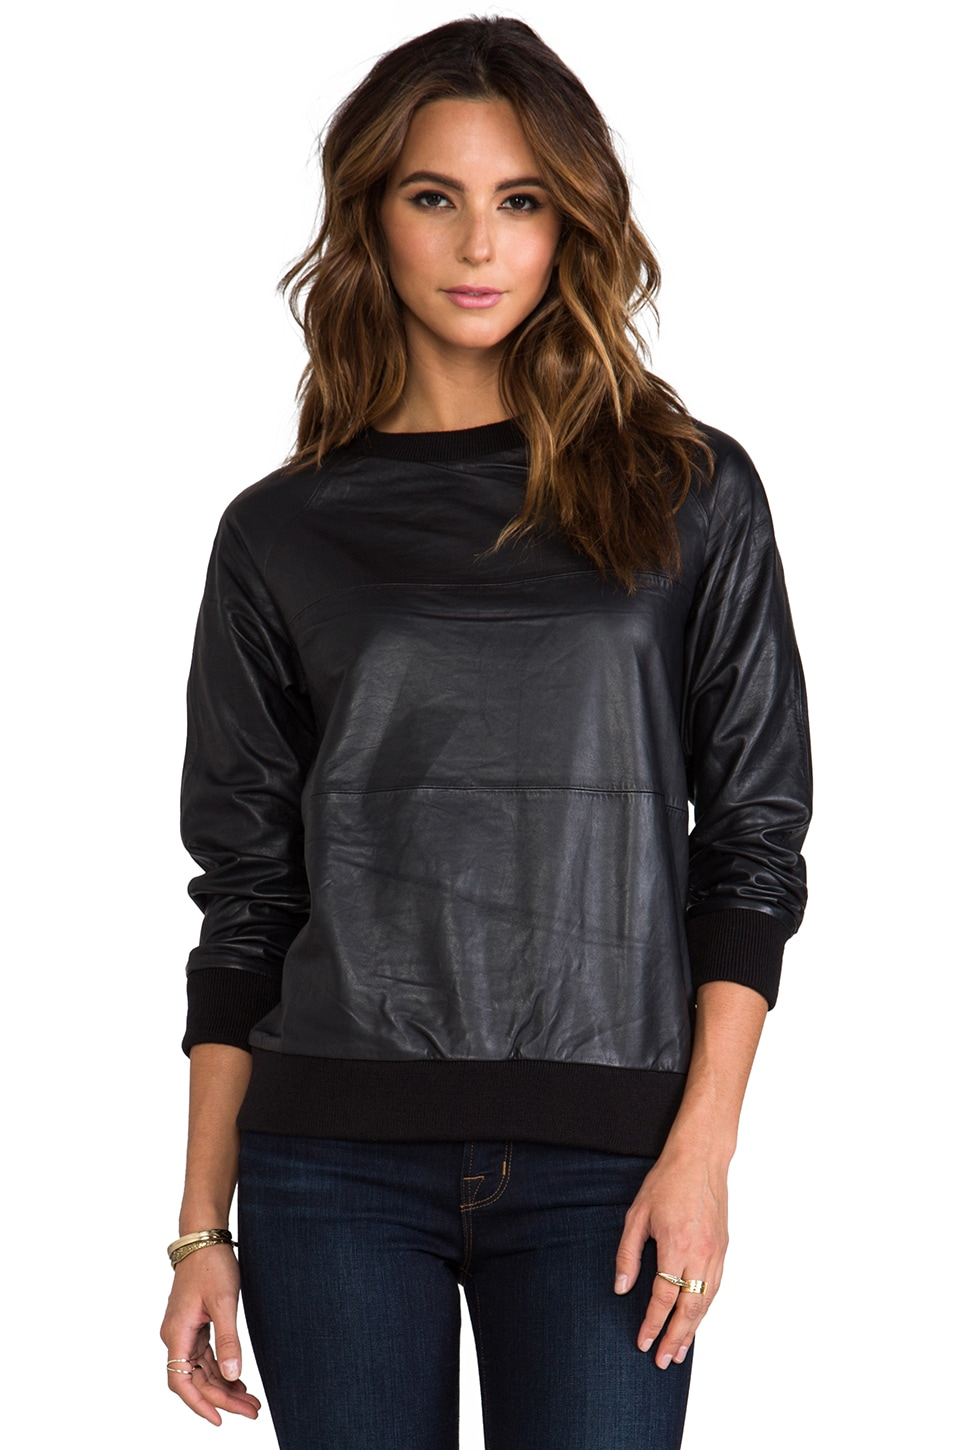 LOVE LEATHER Baller Crew Neck Sweater in Black Licorice